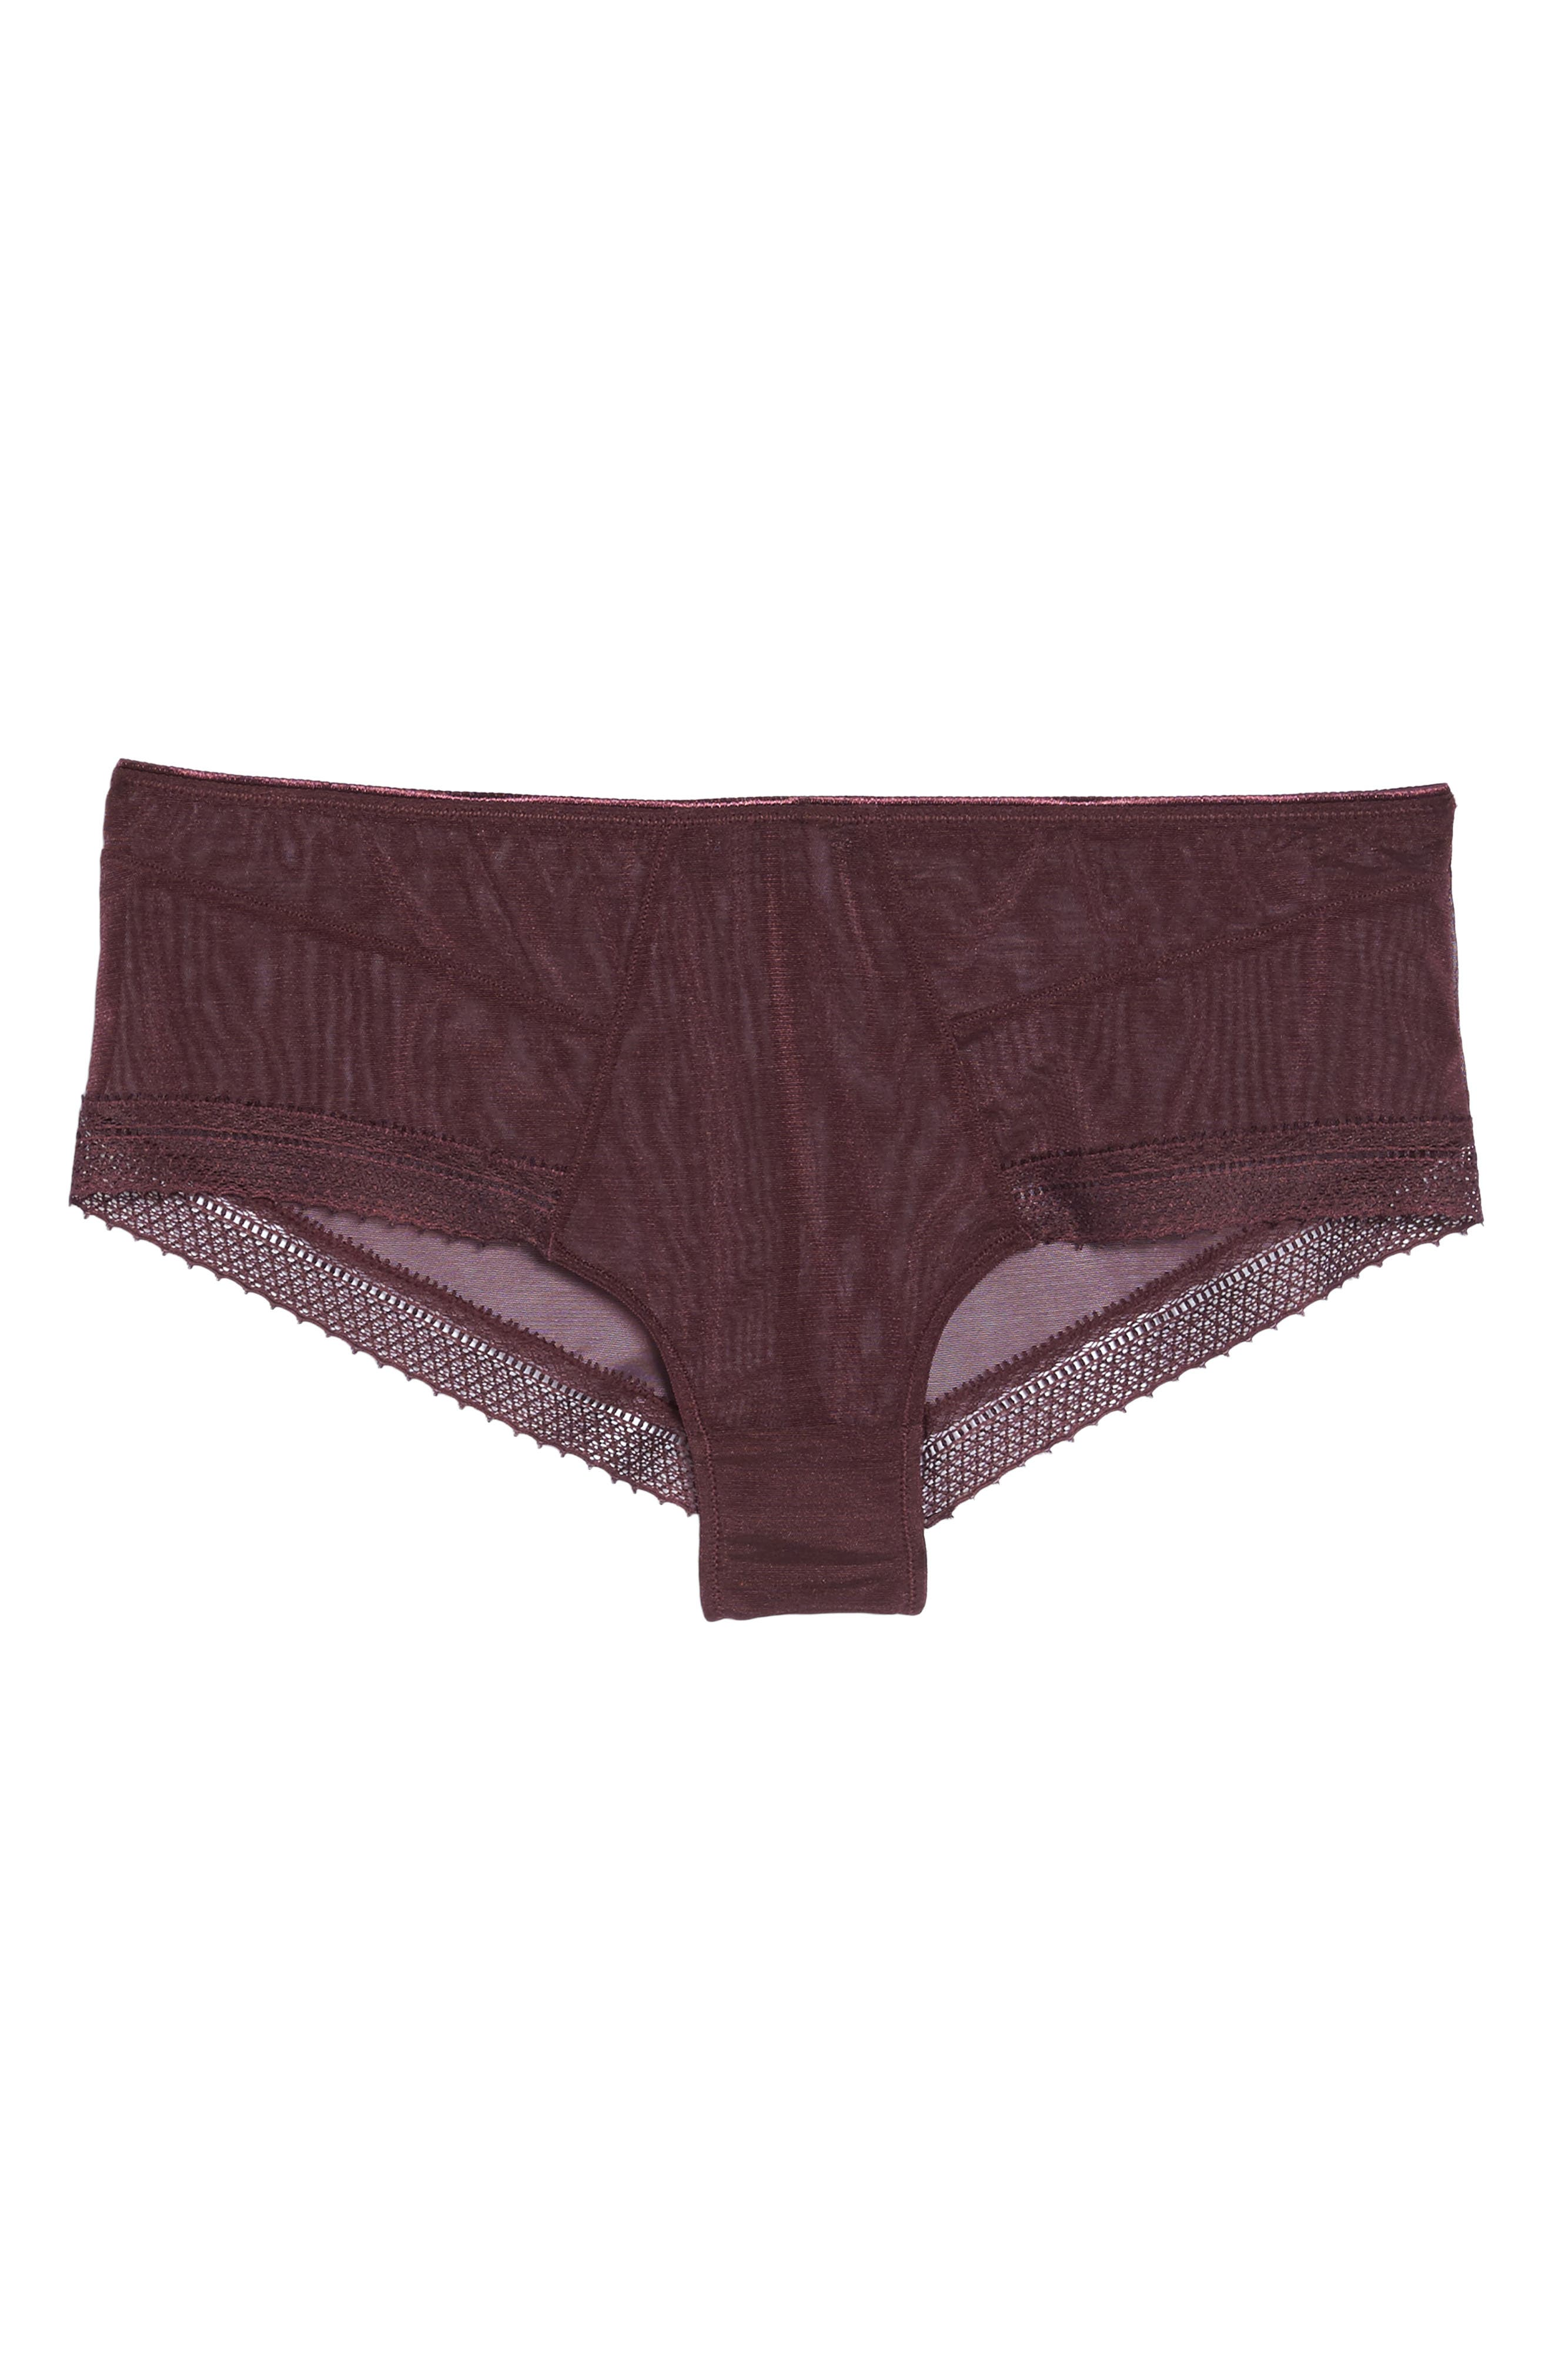 Jet Set Hipster Panties,                             Alternate thumbnail 10, color,                             Garnet